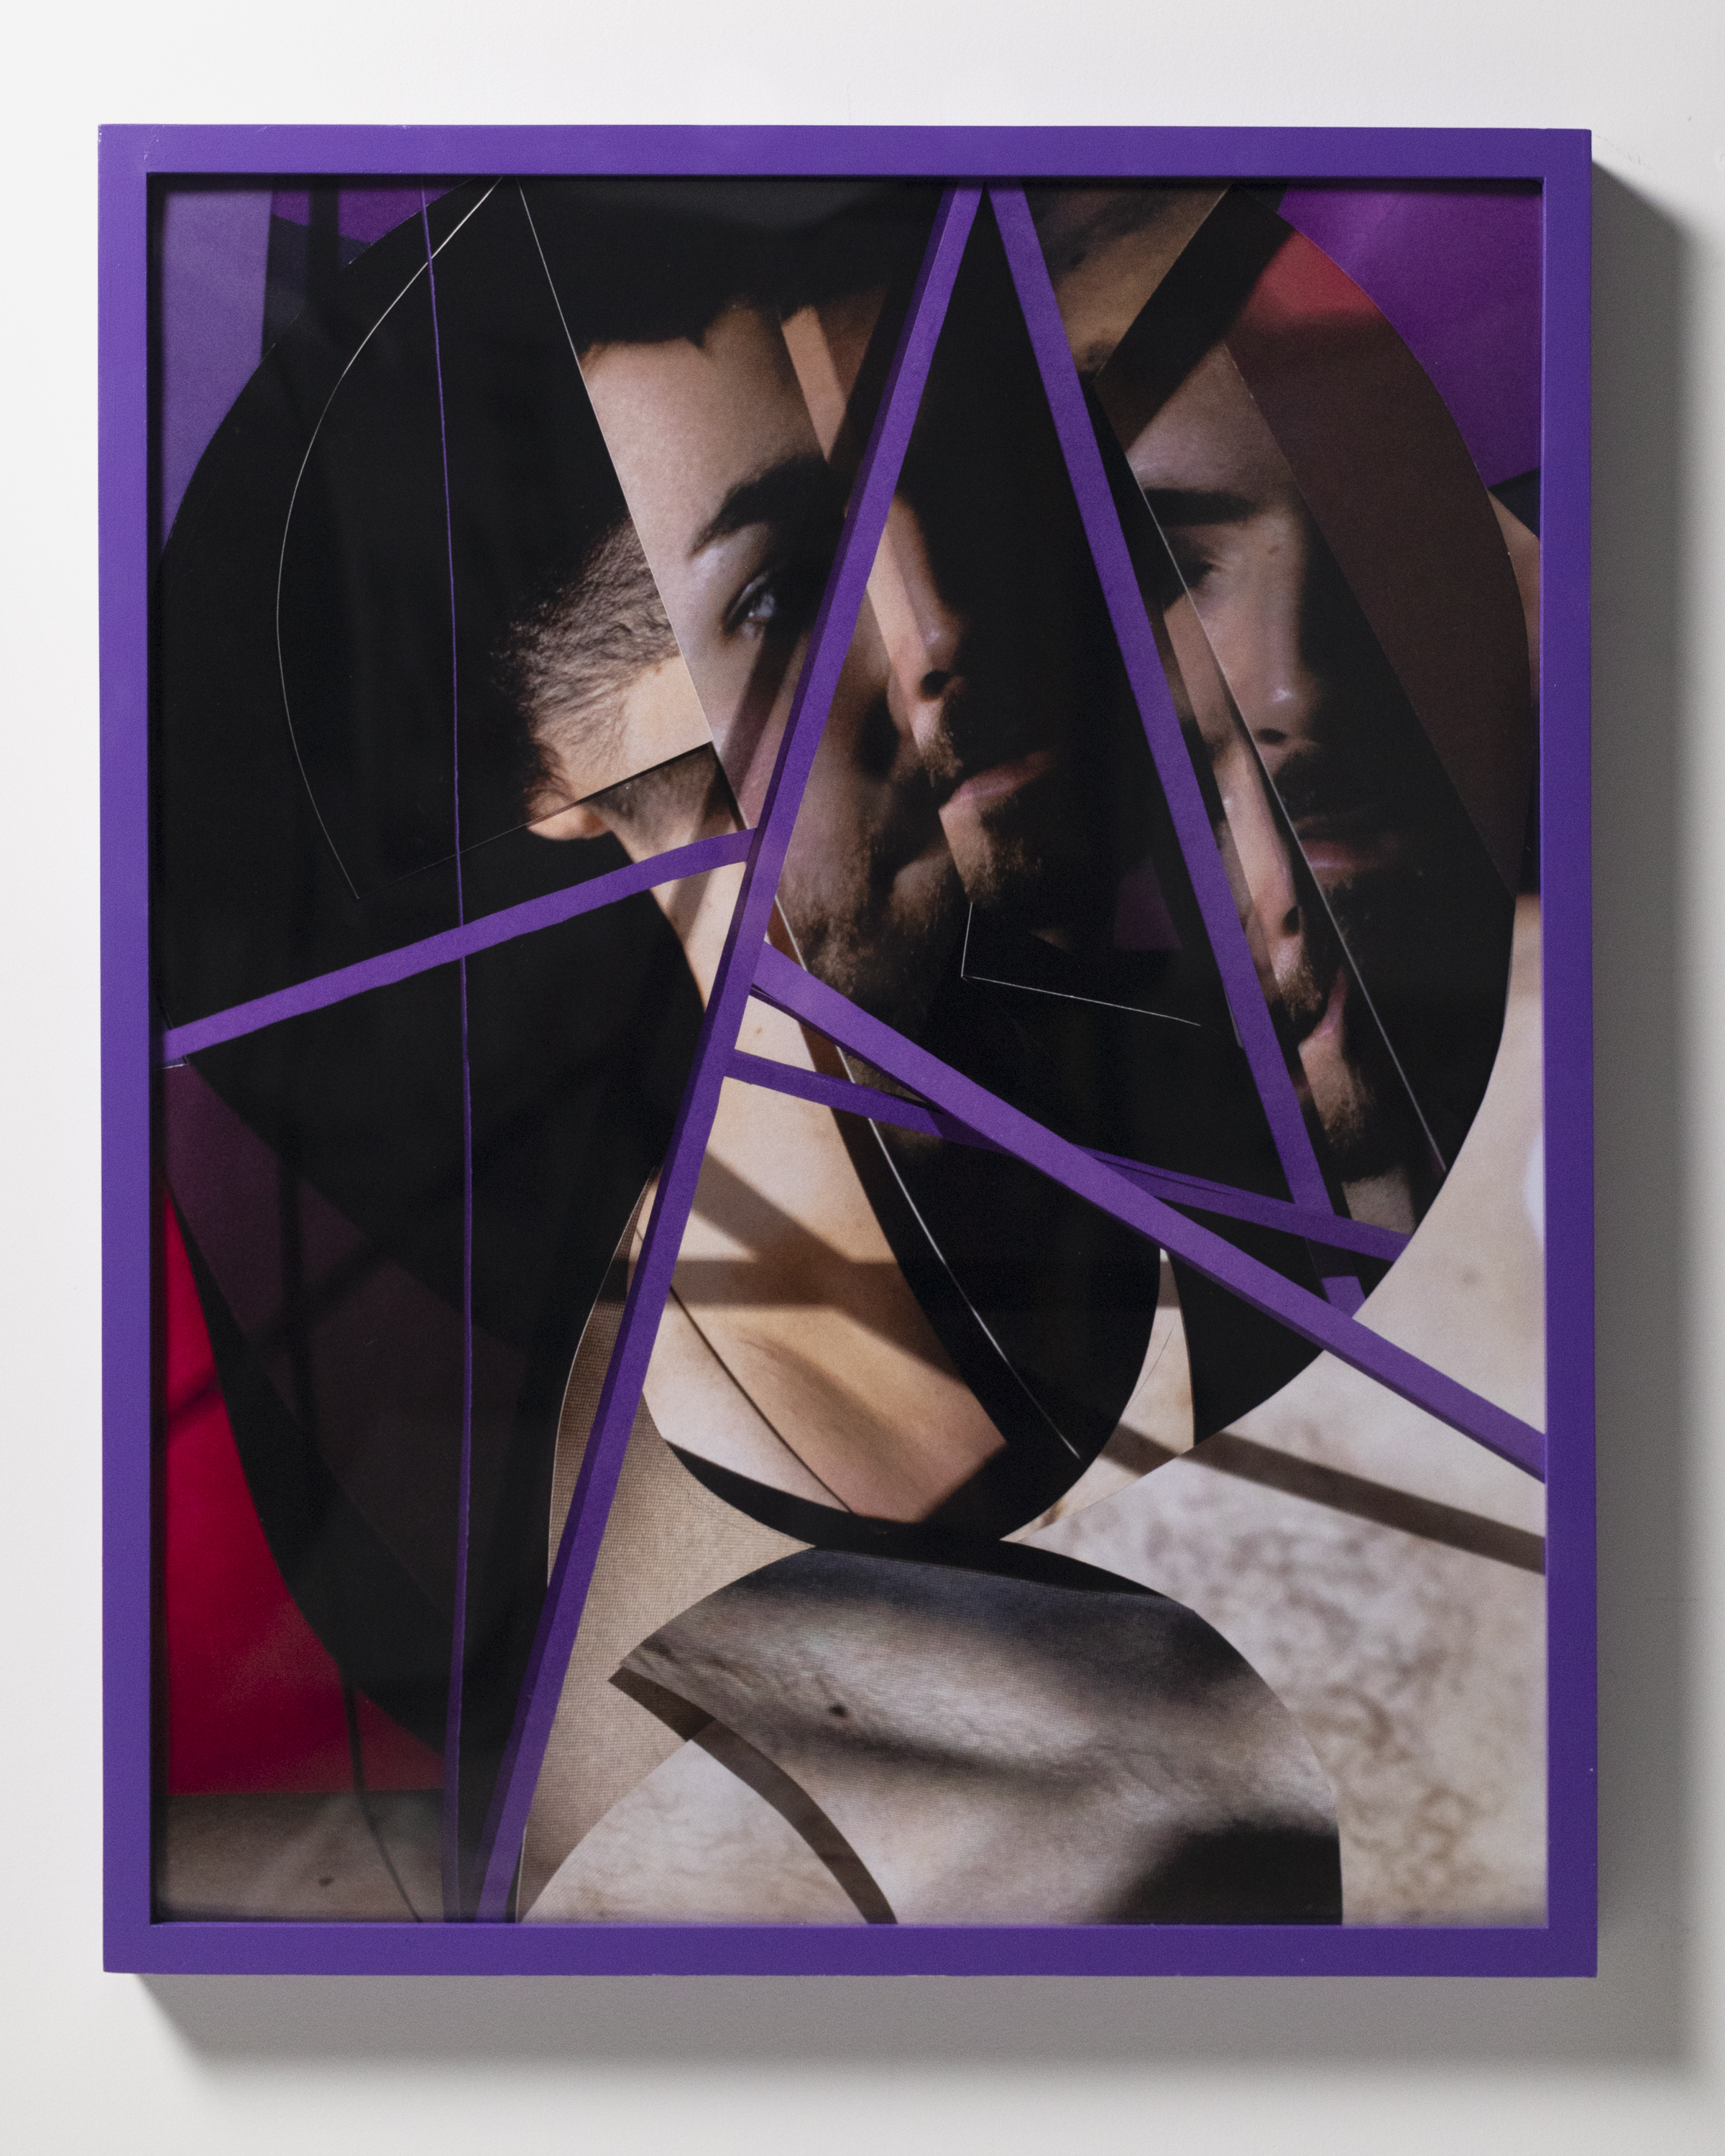 Stained   2019  Inkjet print and painted wood frame  25.5 x 31.5 inches